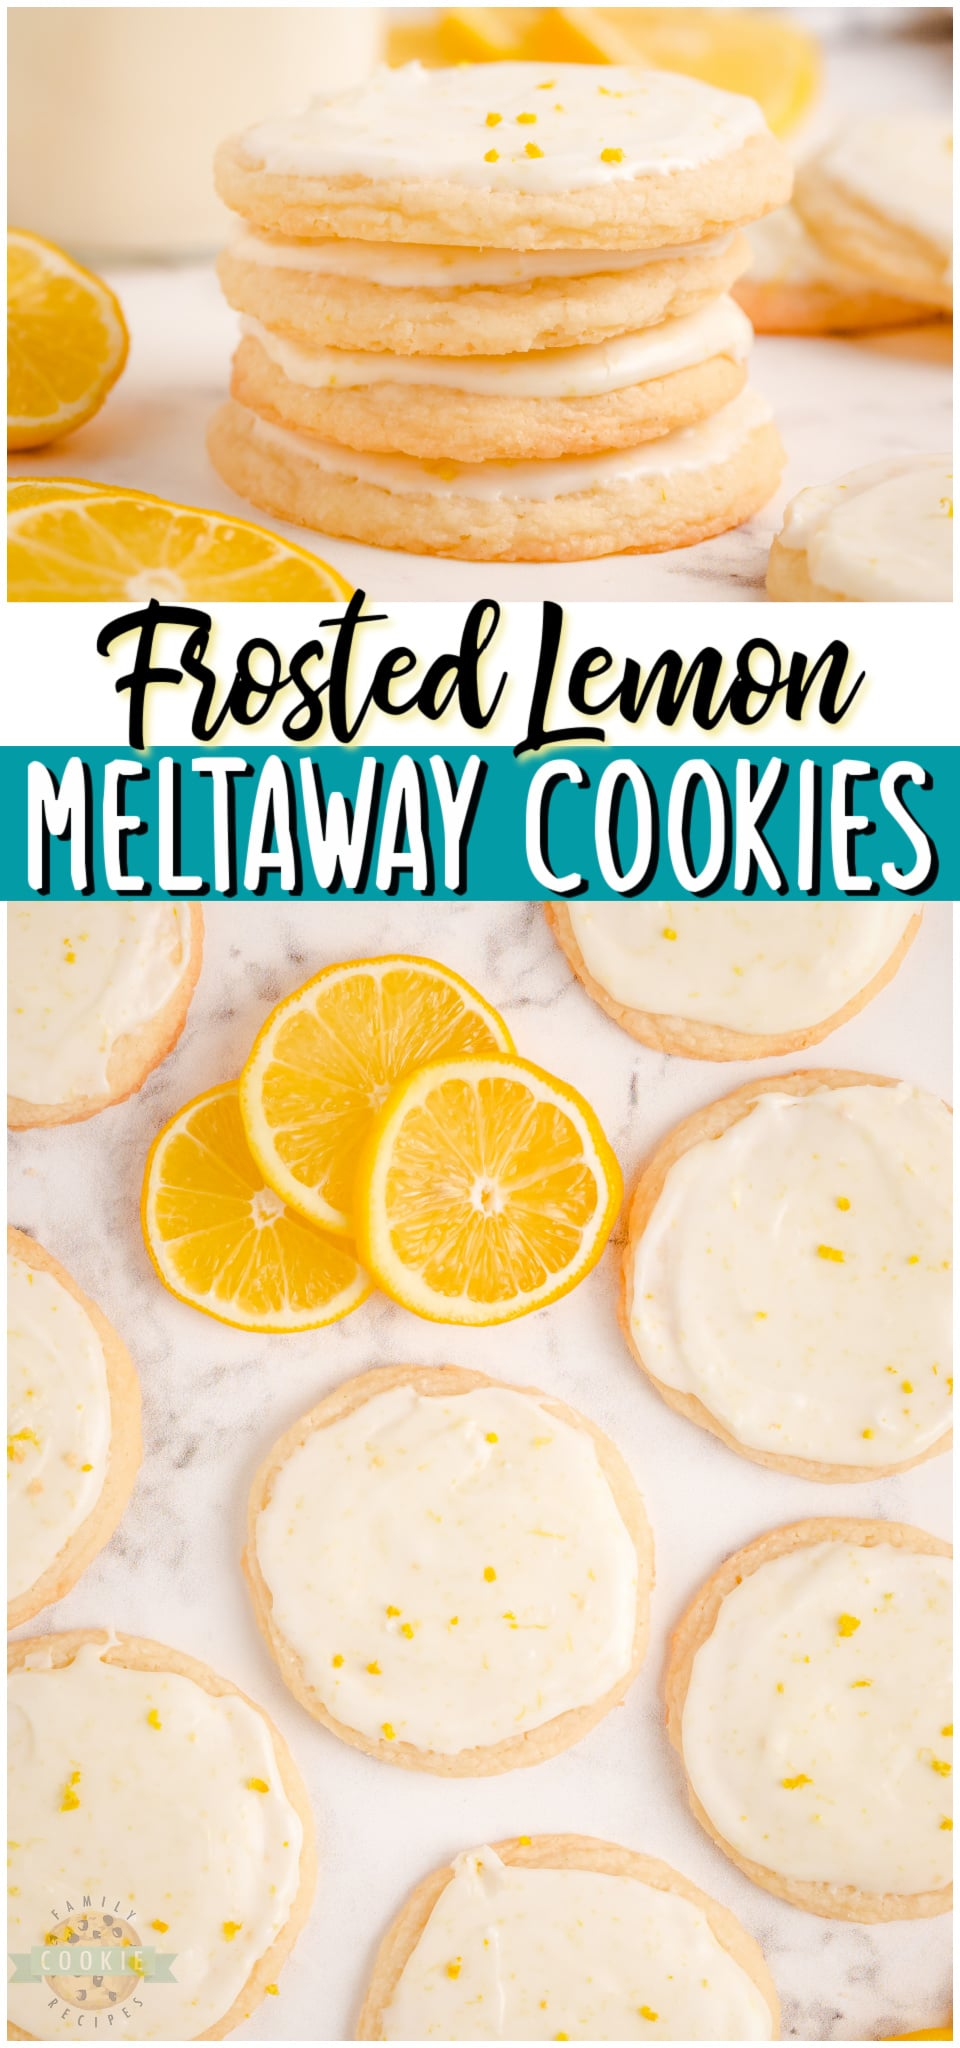 Lemon Meltaways made with simple ingredients like butter, flour, lemon zest & cornstarch. Soft, tender meltaway cookies topped with a lovely fresh lemon glaze!  #lemon #cookies #meltaways #baking #dessert #easyrecipe from FAMILY COOKIE RECIPES via @familycookierecipes